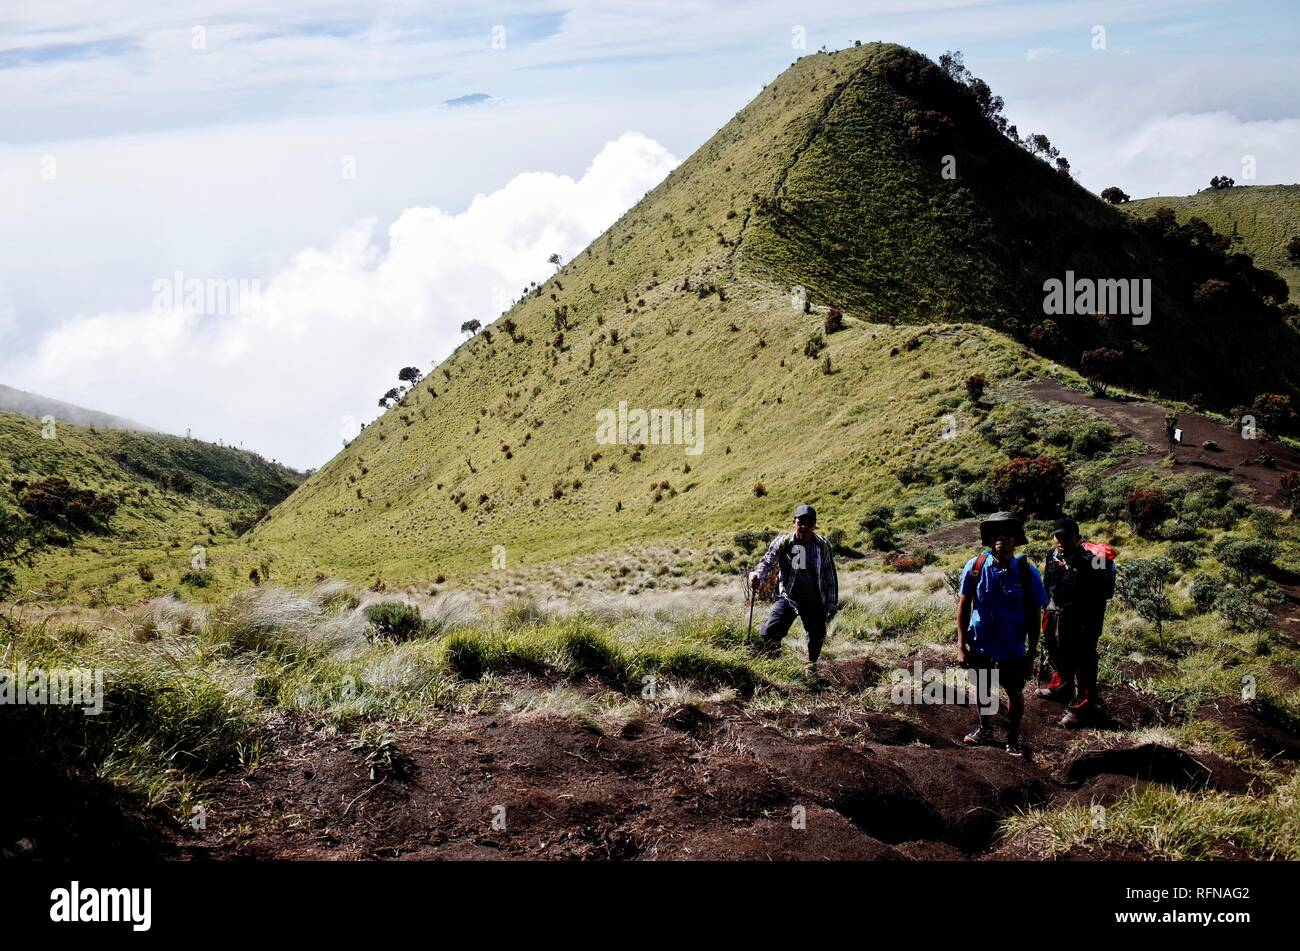 Double Summit Mount Merapi and Mount Merbabu experience - Stock Image